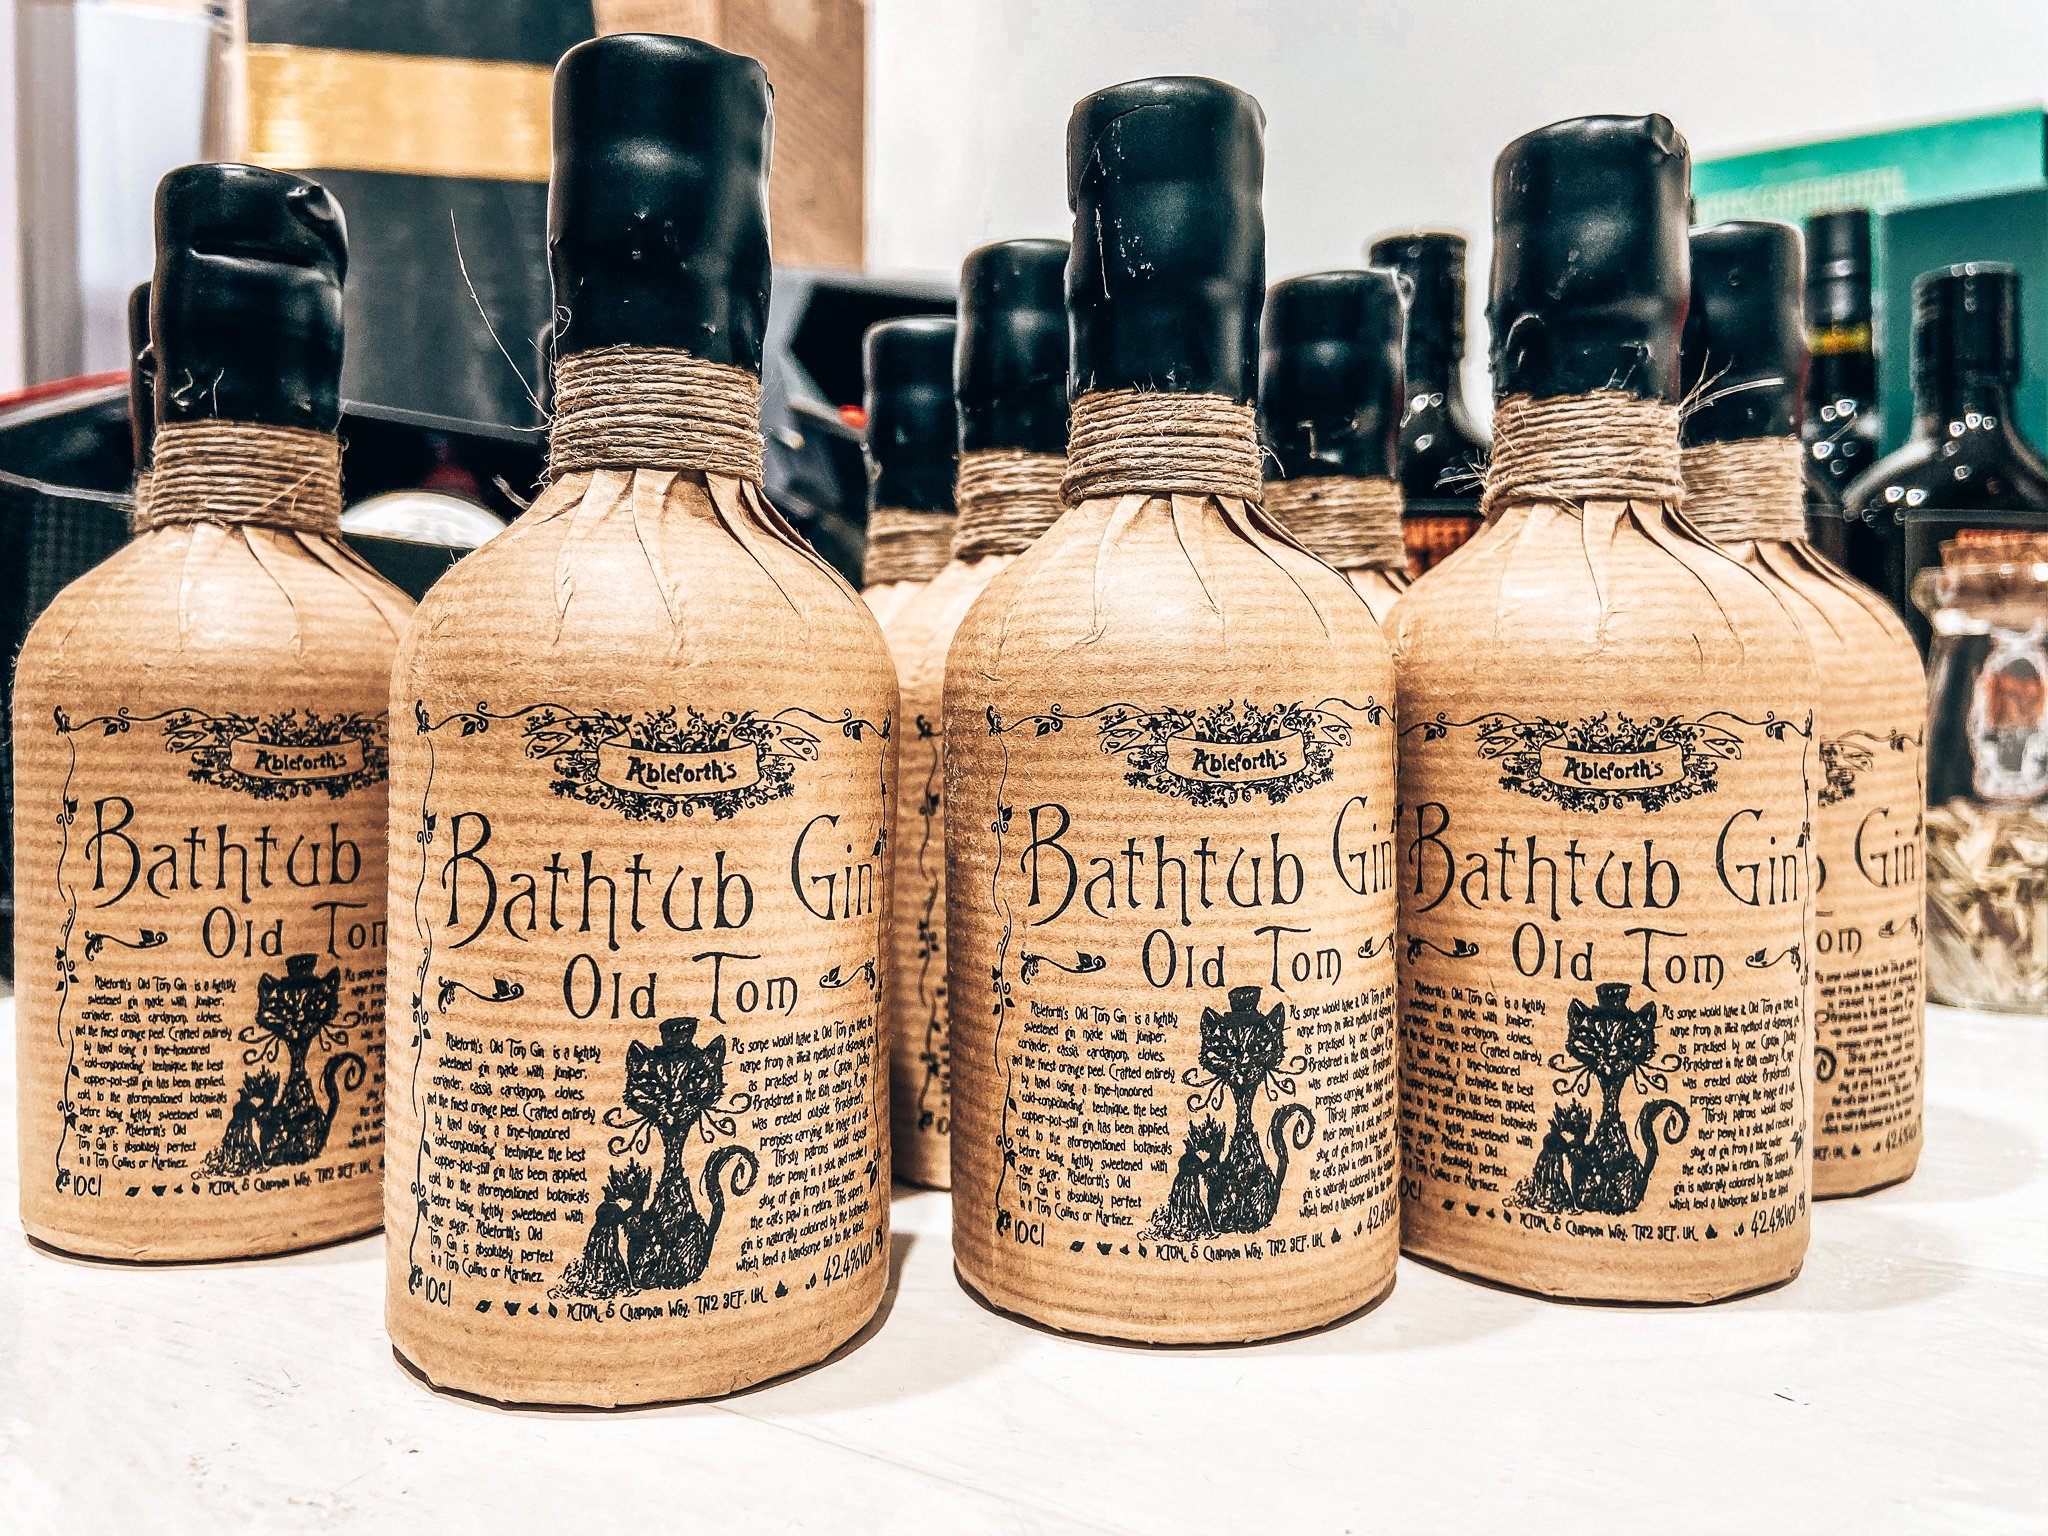 Ableforth's Bathtub Gin, Alles over gin.